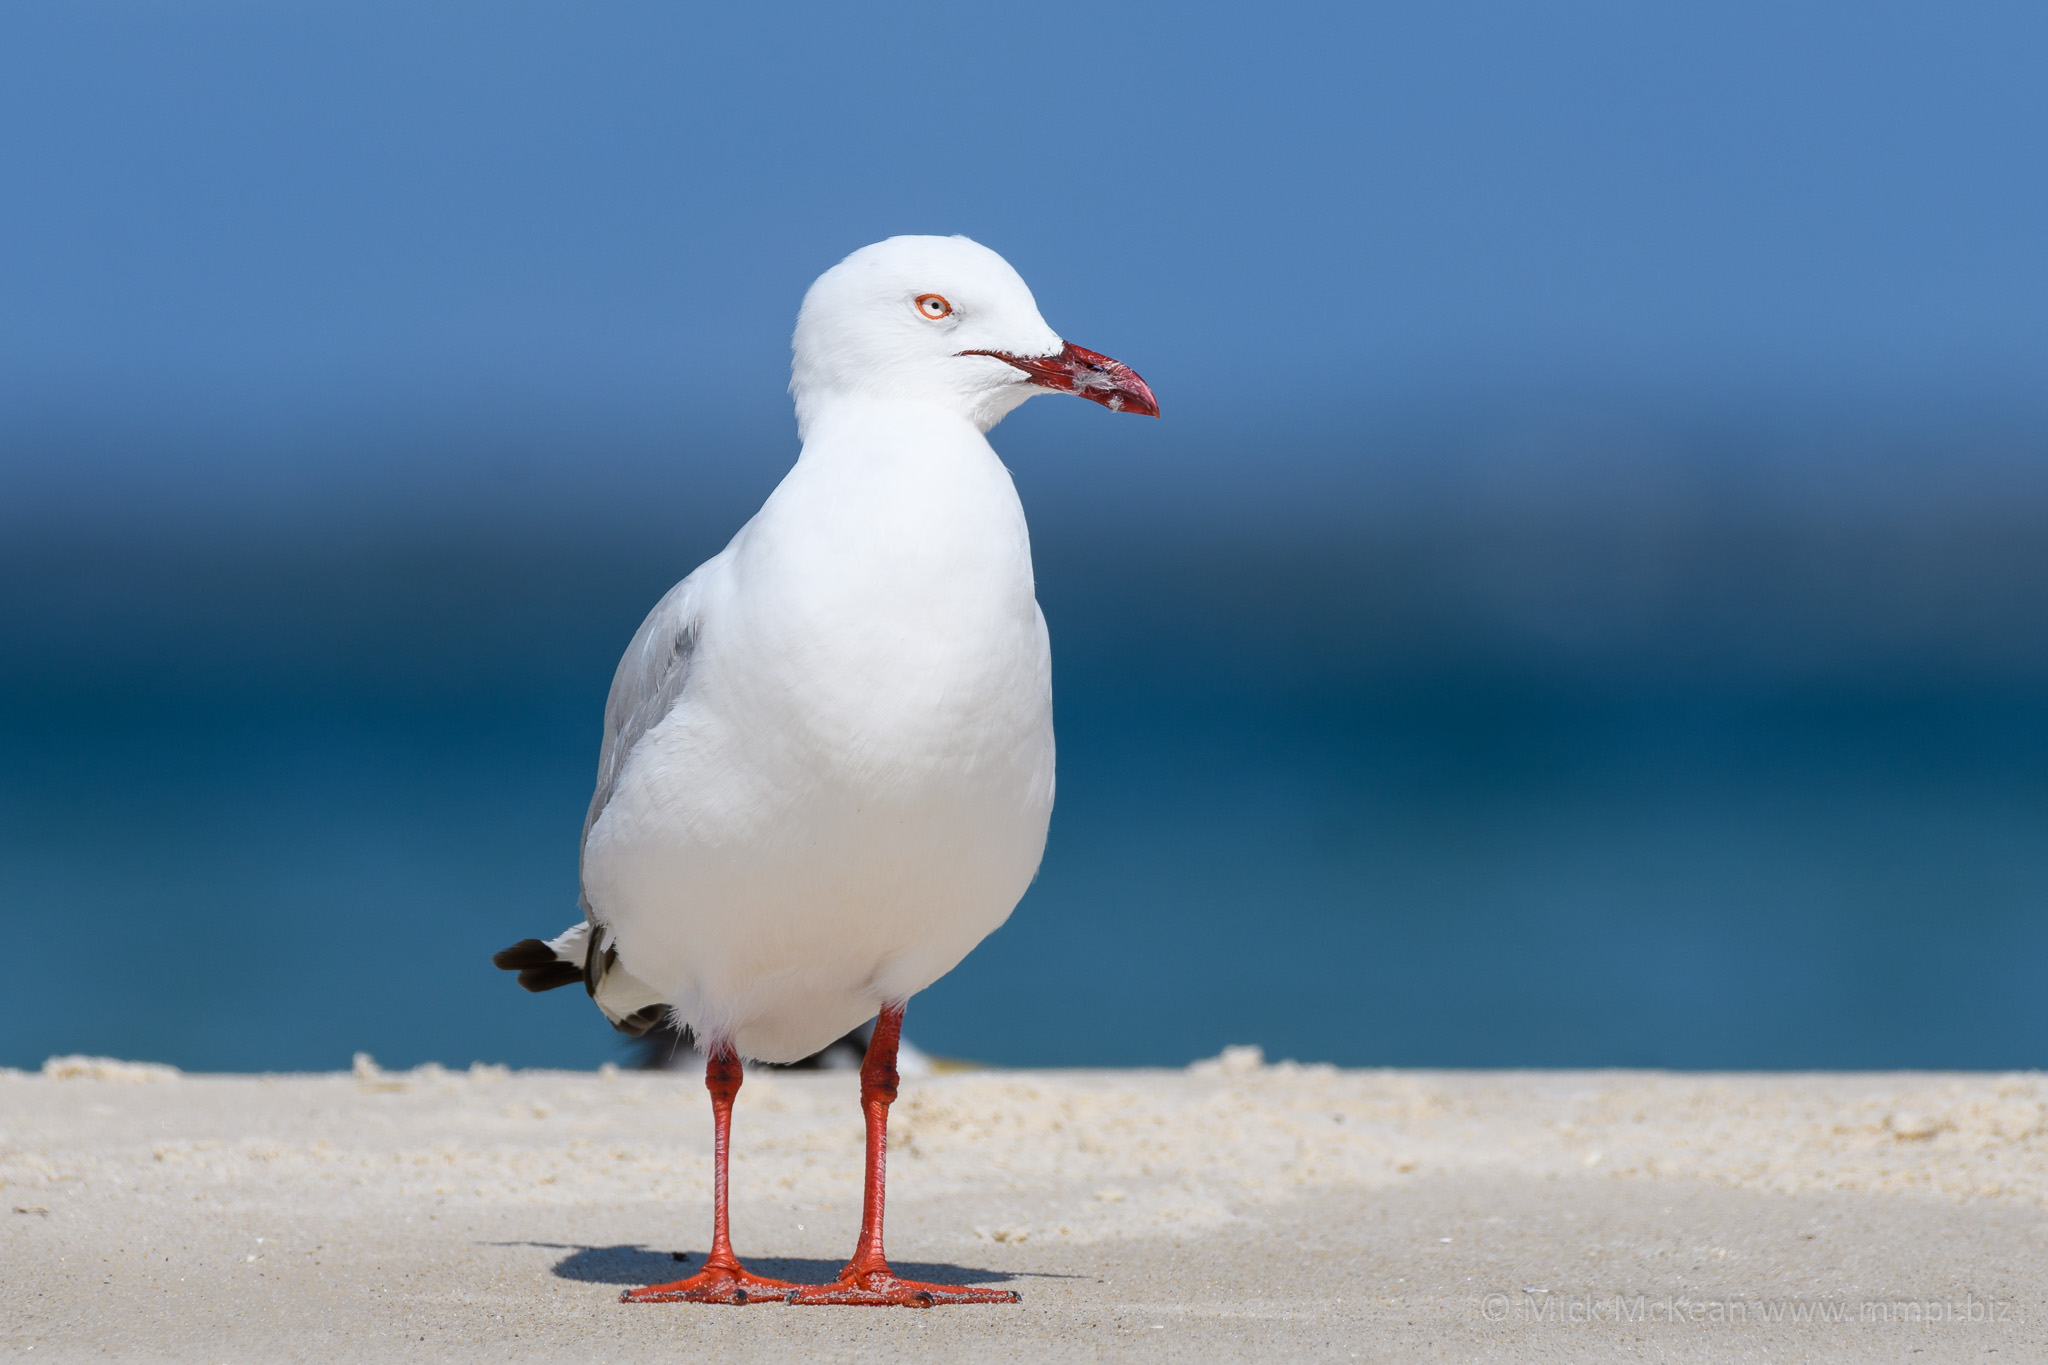 Silver Gull at the beach